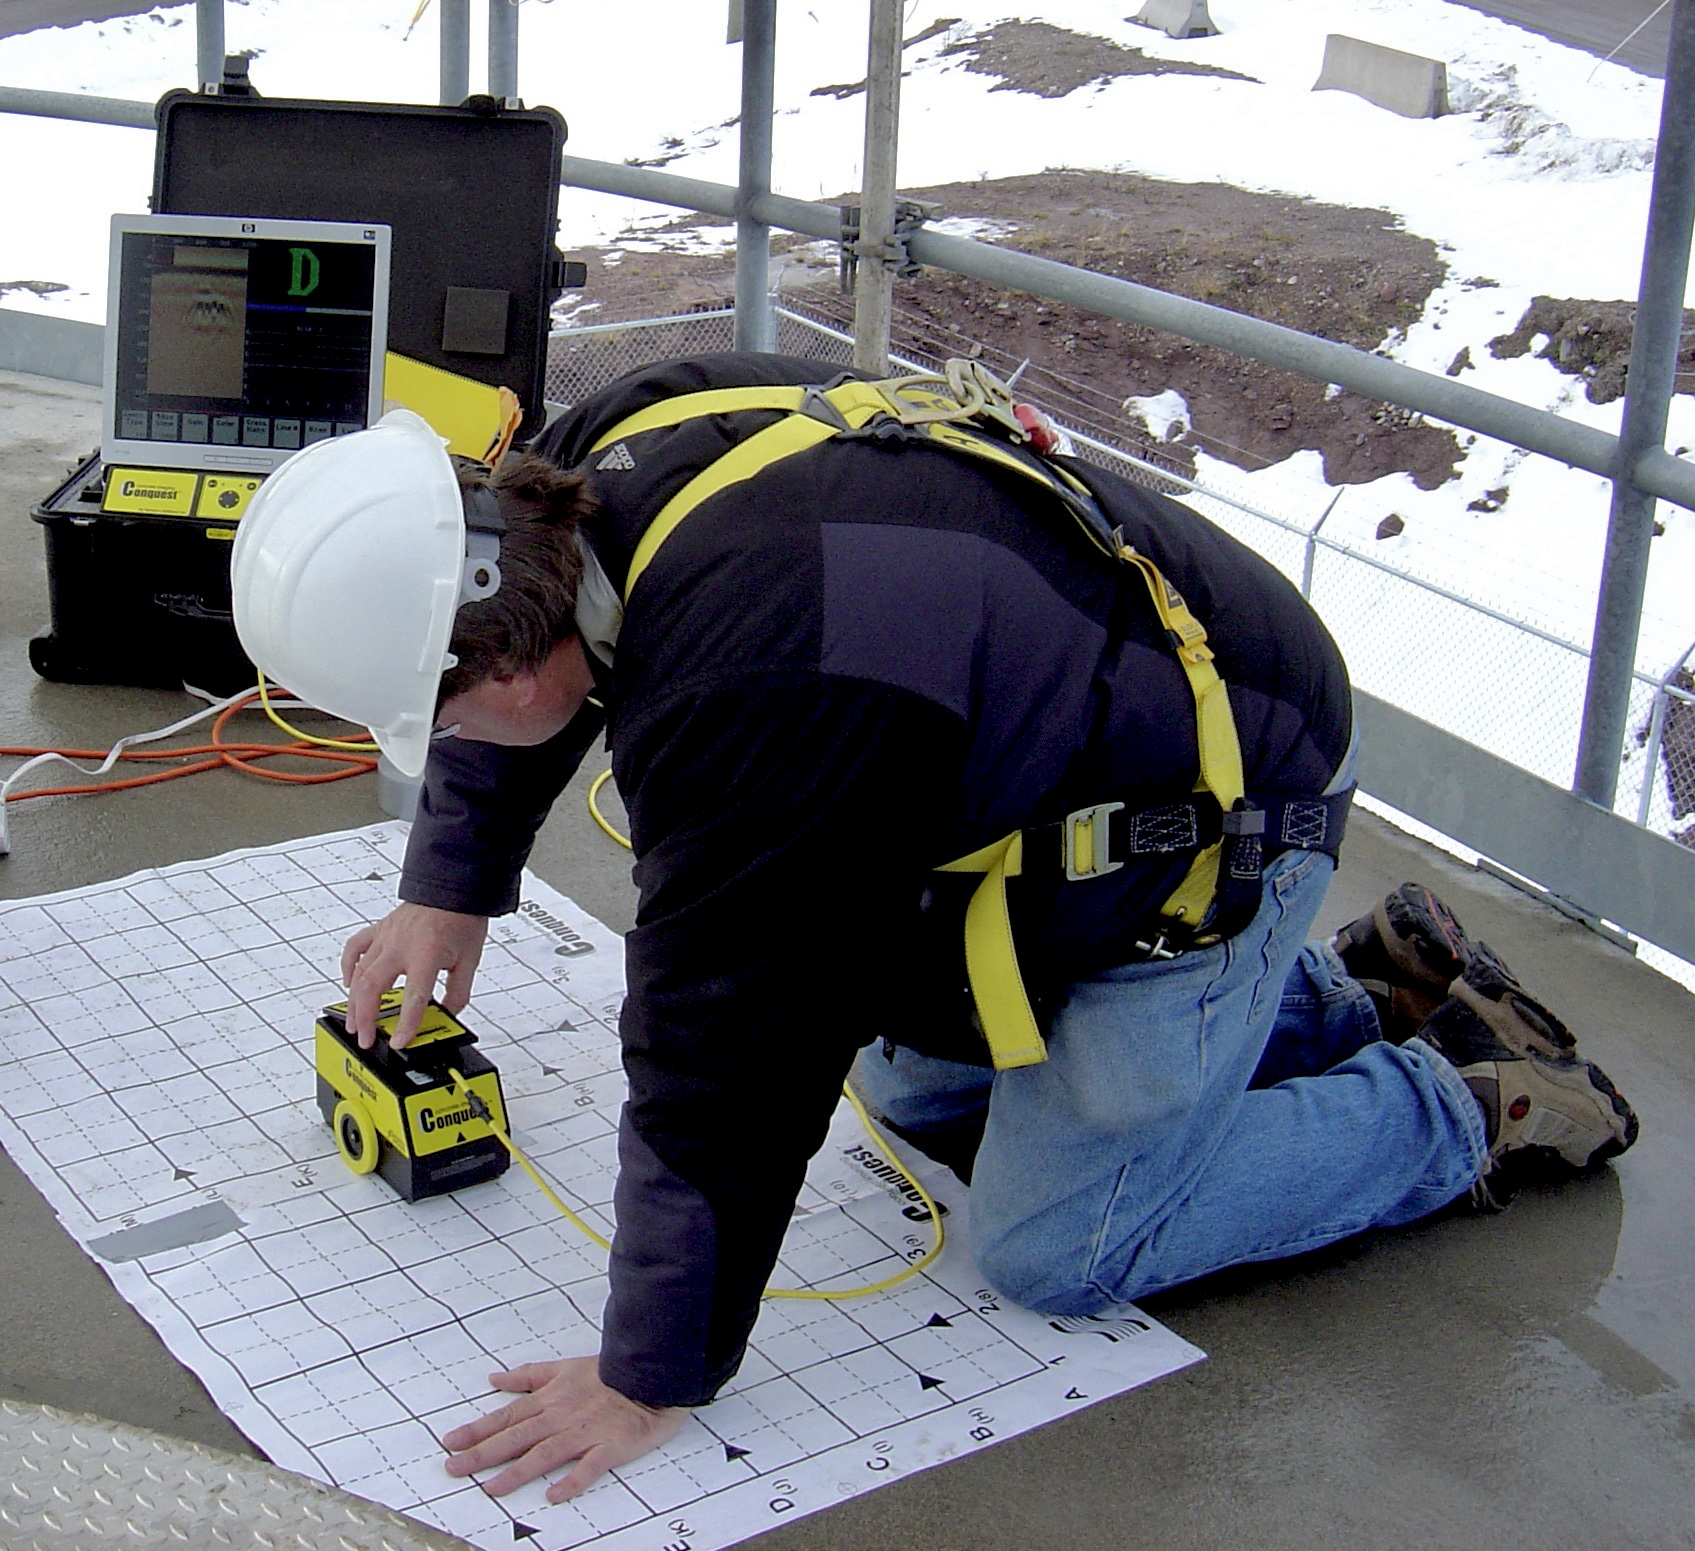 commercial concrete scanning using GPR equipment